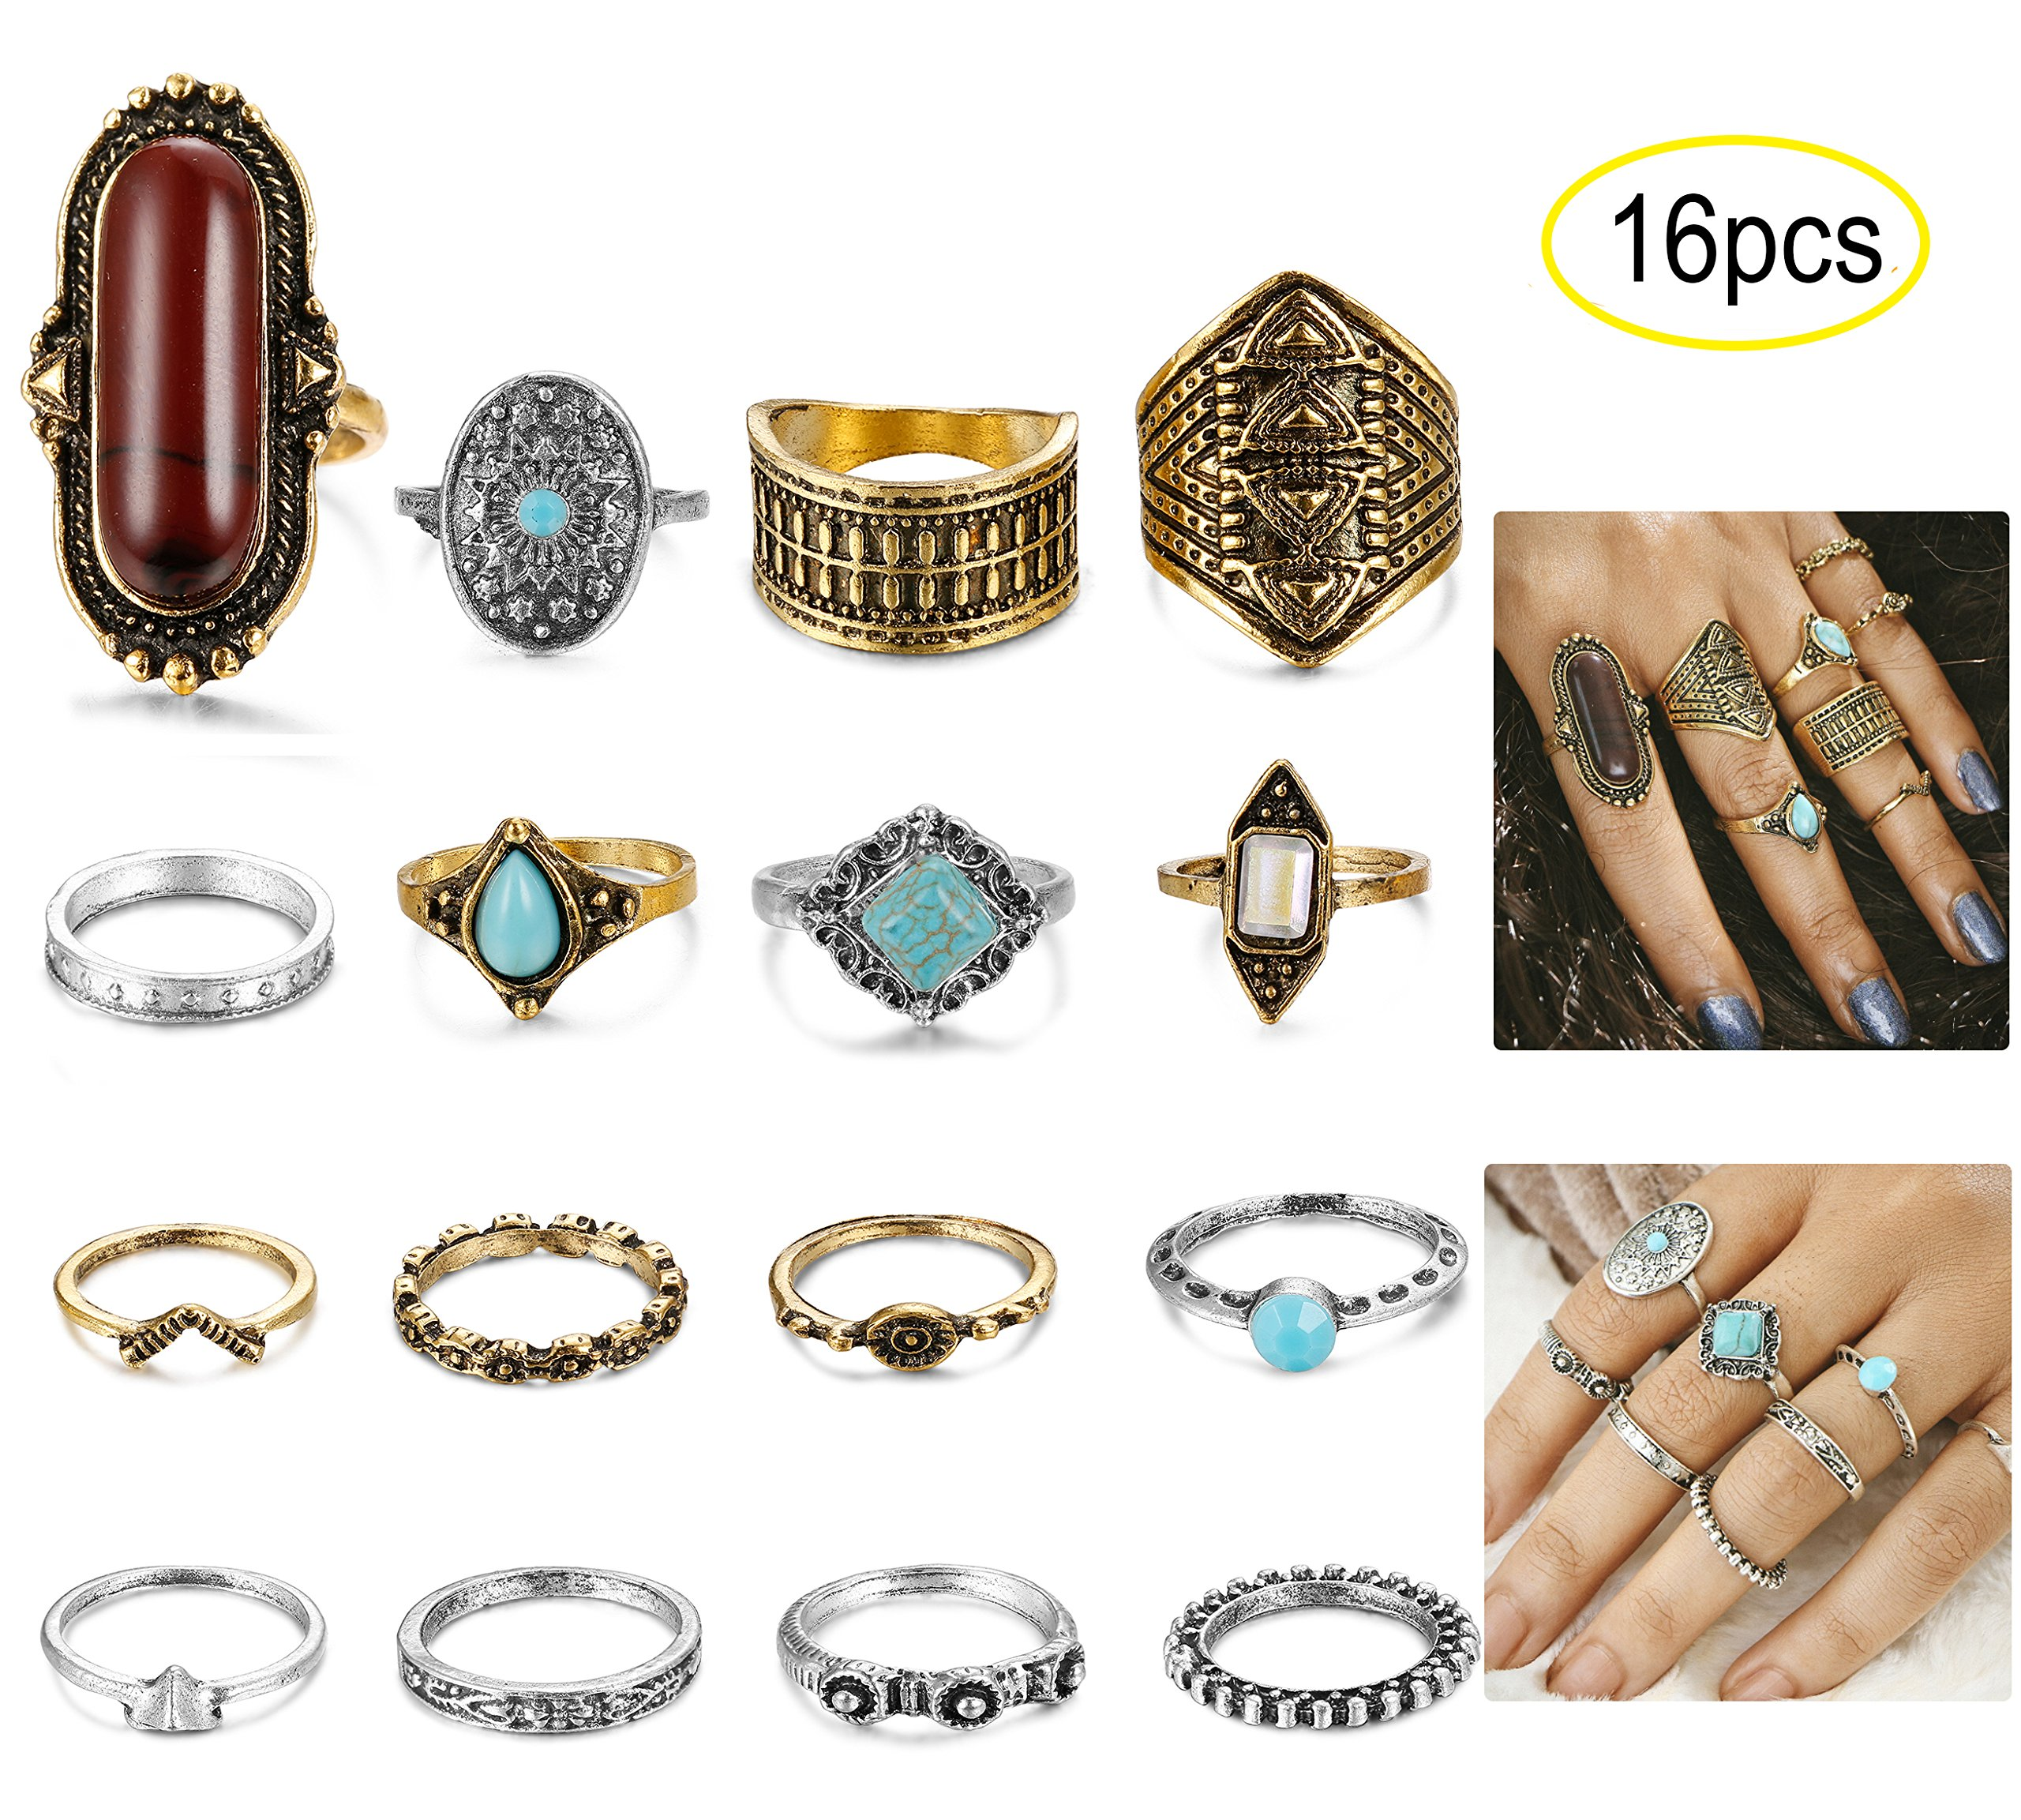 LOYALLOOK 16-18PCS Bohemian Vintage Knuckle Ring Set for Women Girls Stackable Rings Finger Toe Rings Set 16pcs